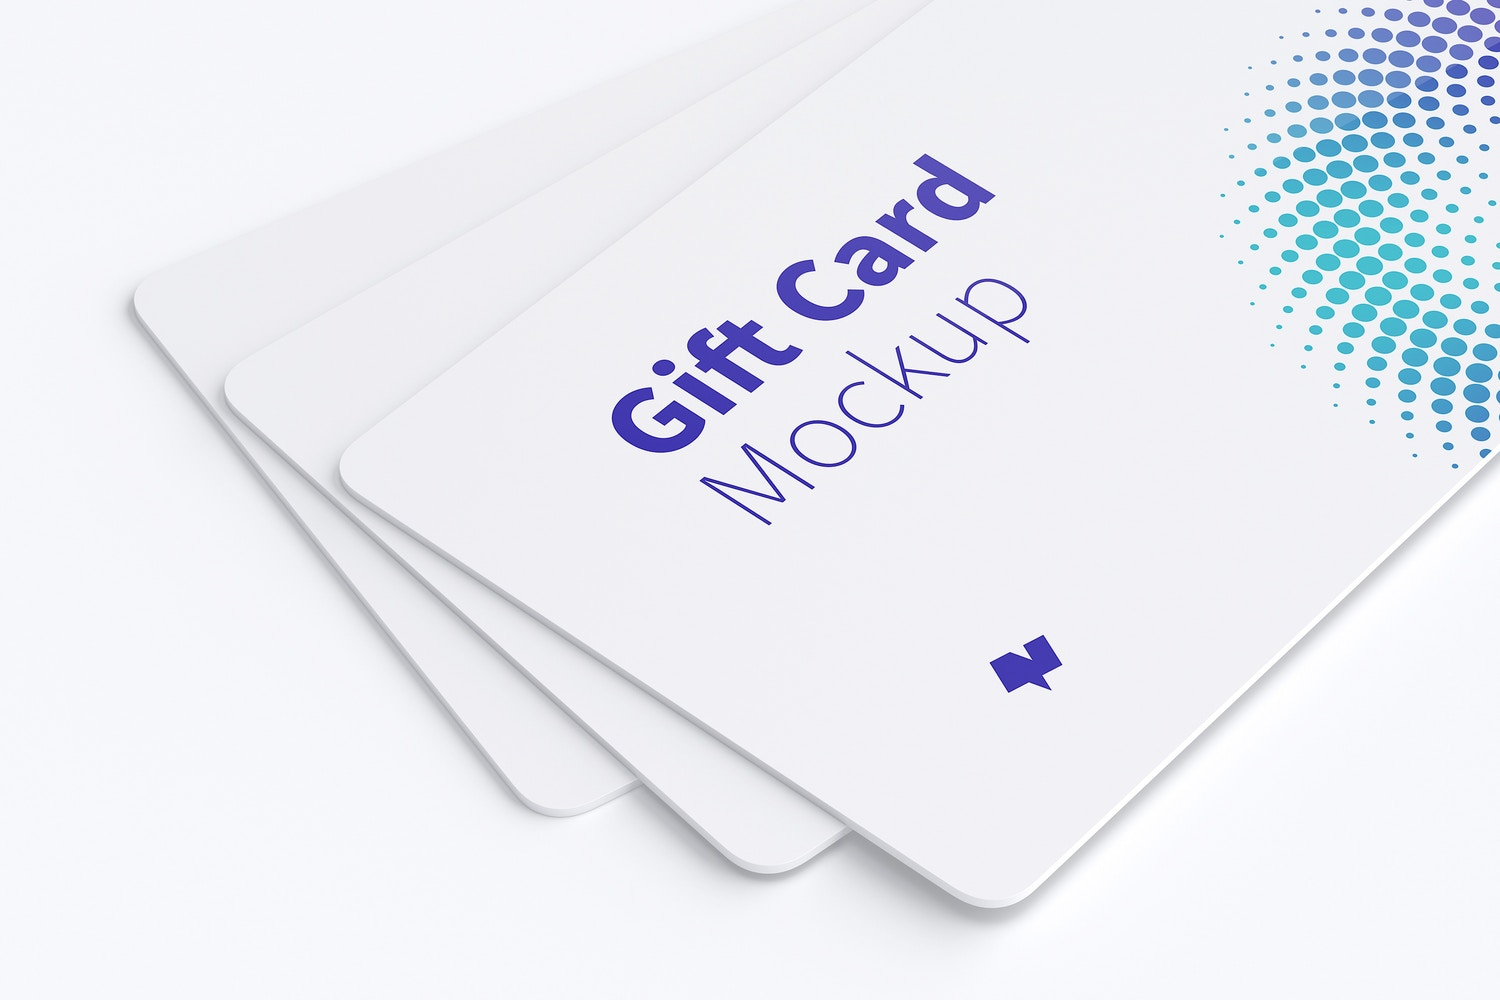 Gift Card Mockup 08 by Original Mockups on Original Mockups